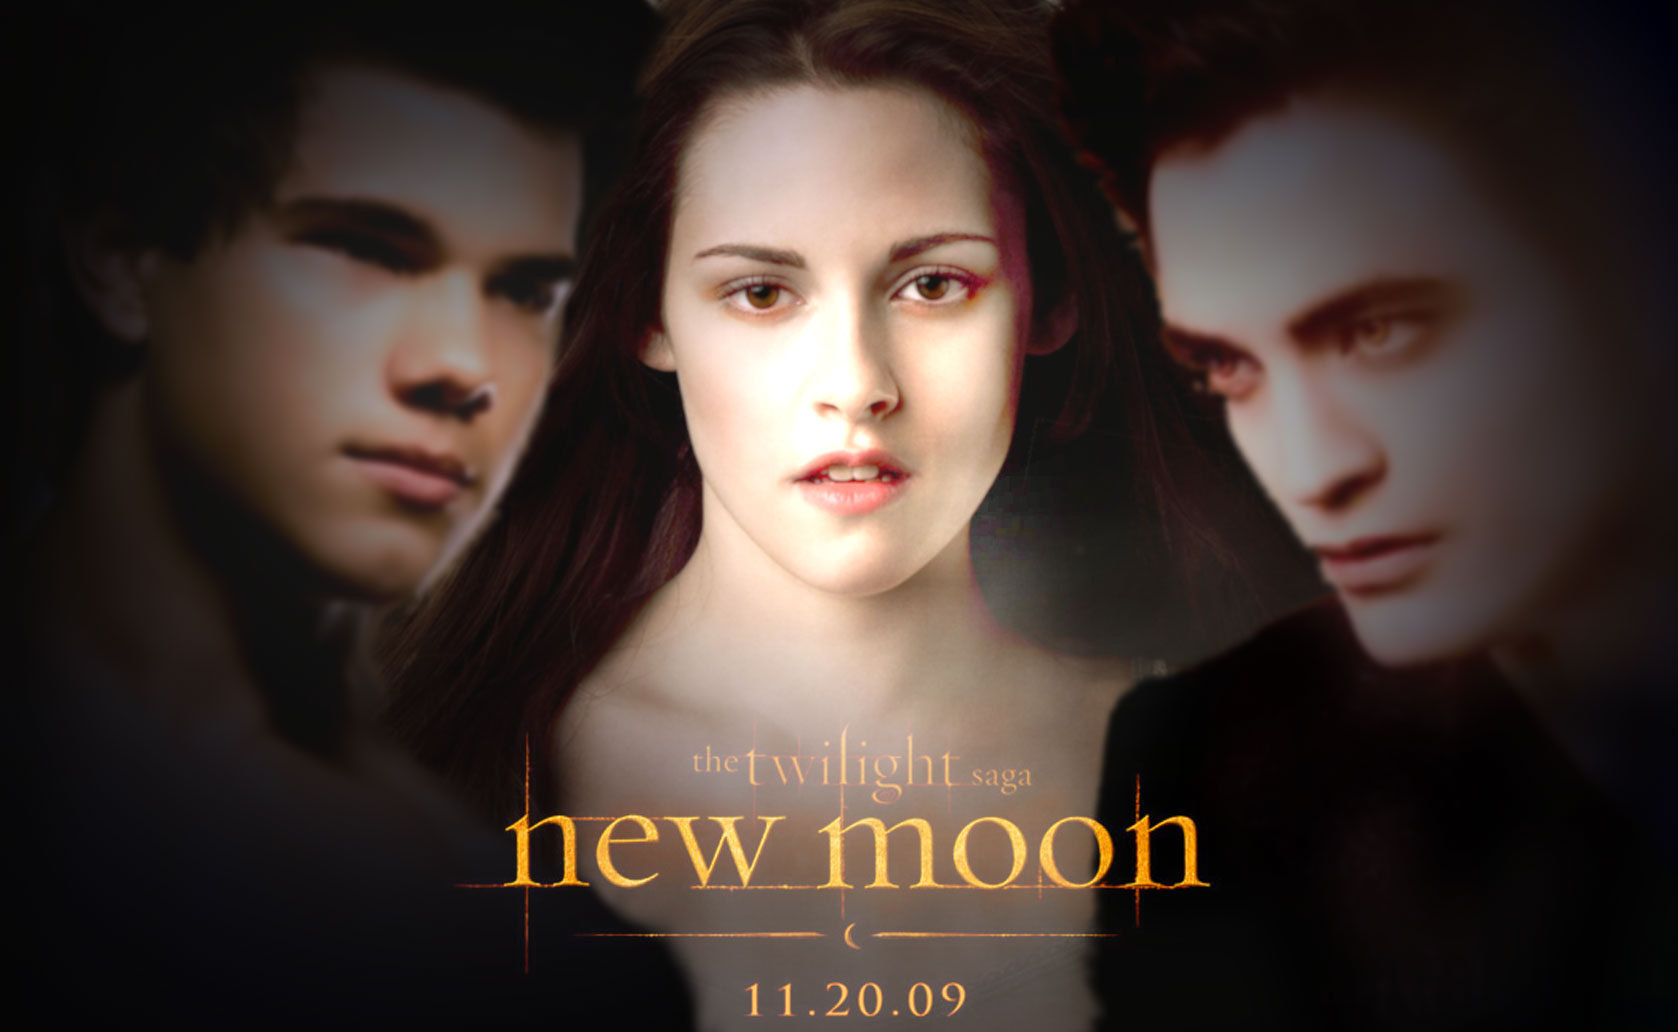 The New moon lover